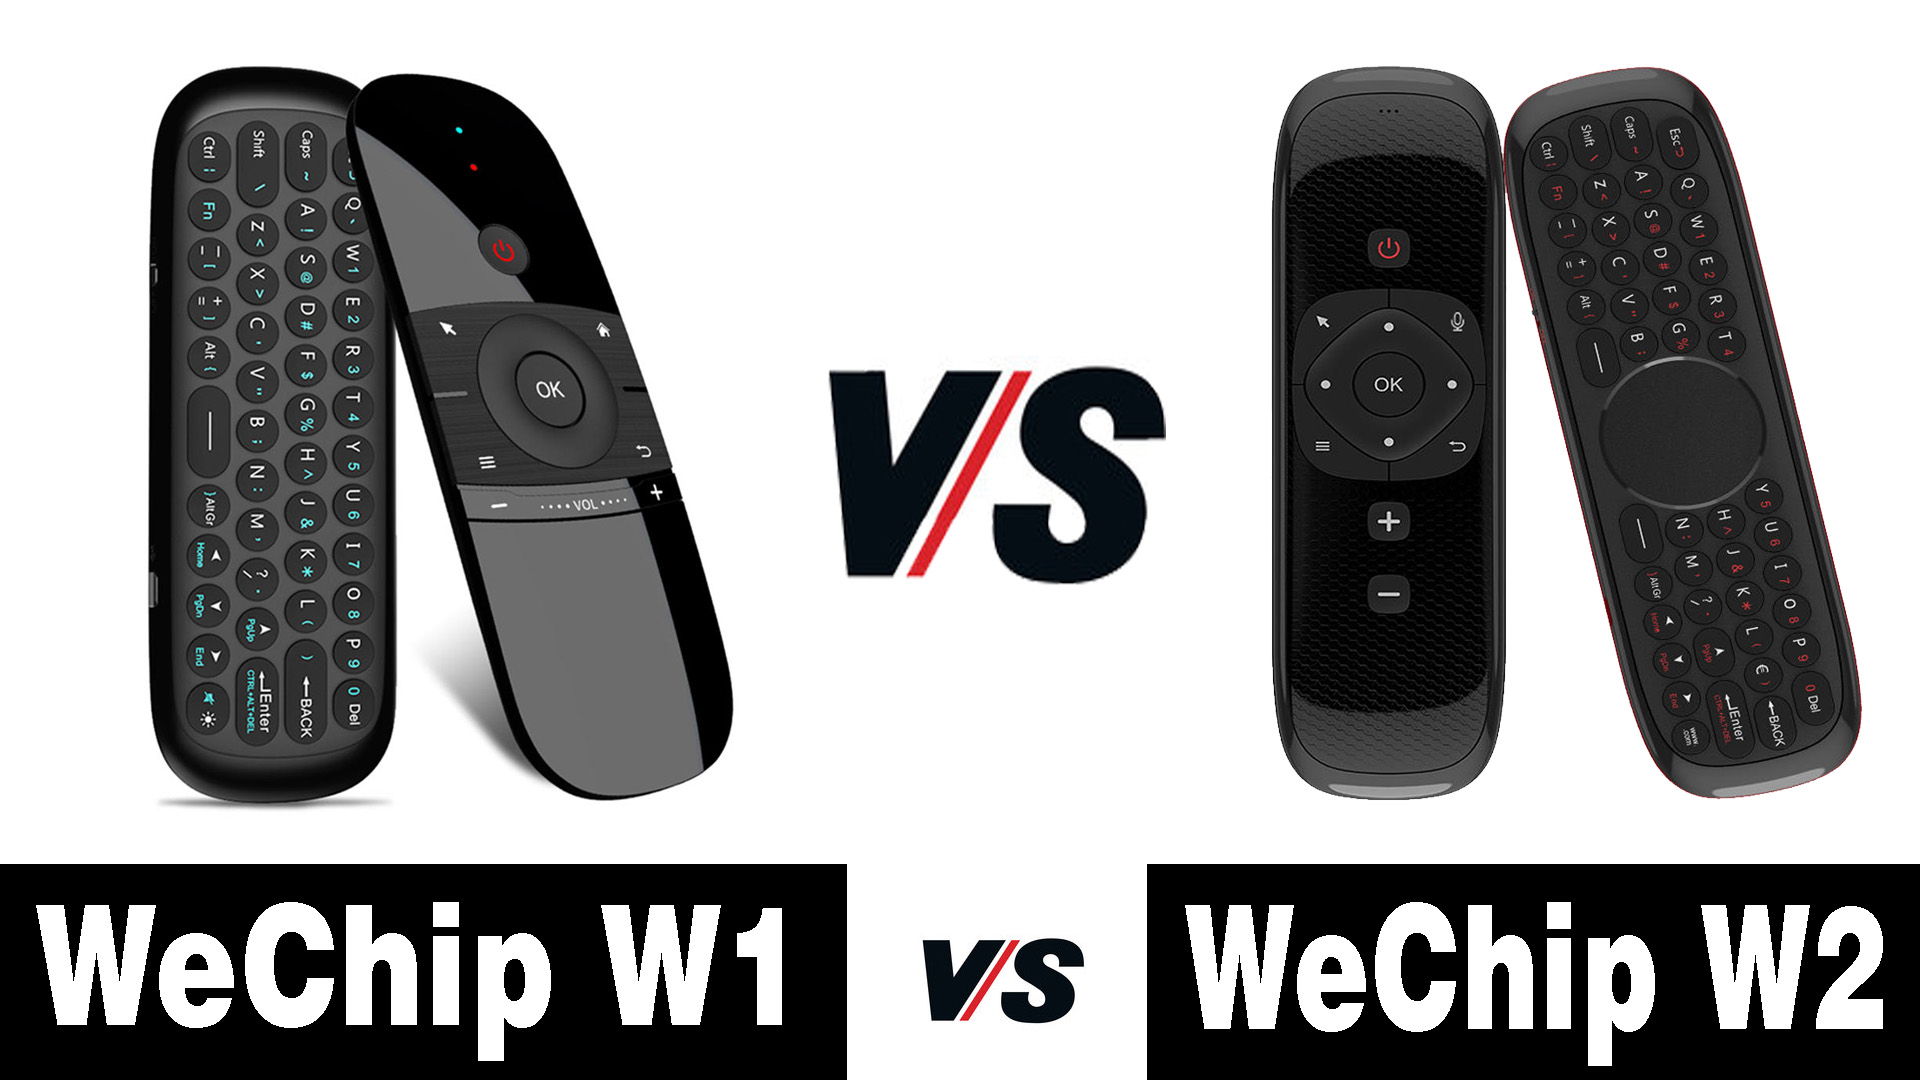 WeChip W2 Air Mouse